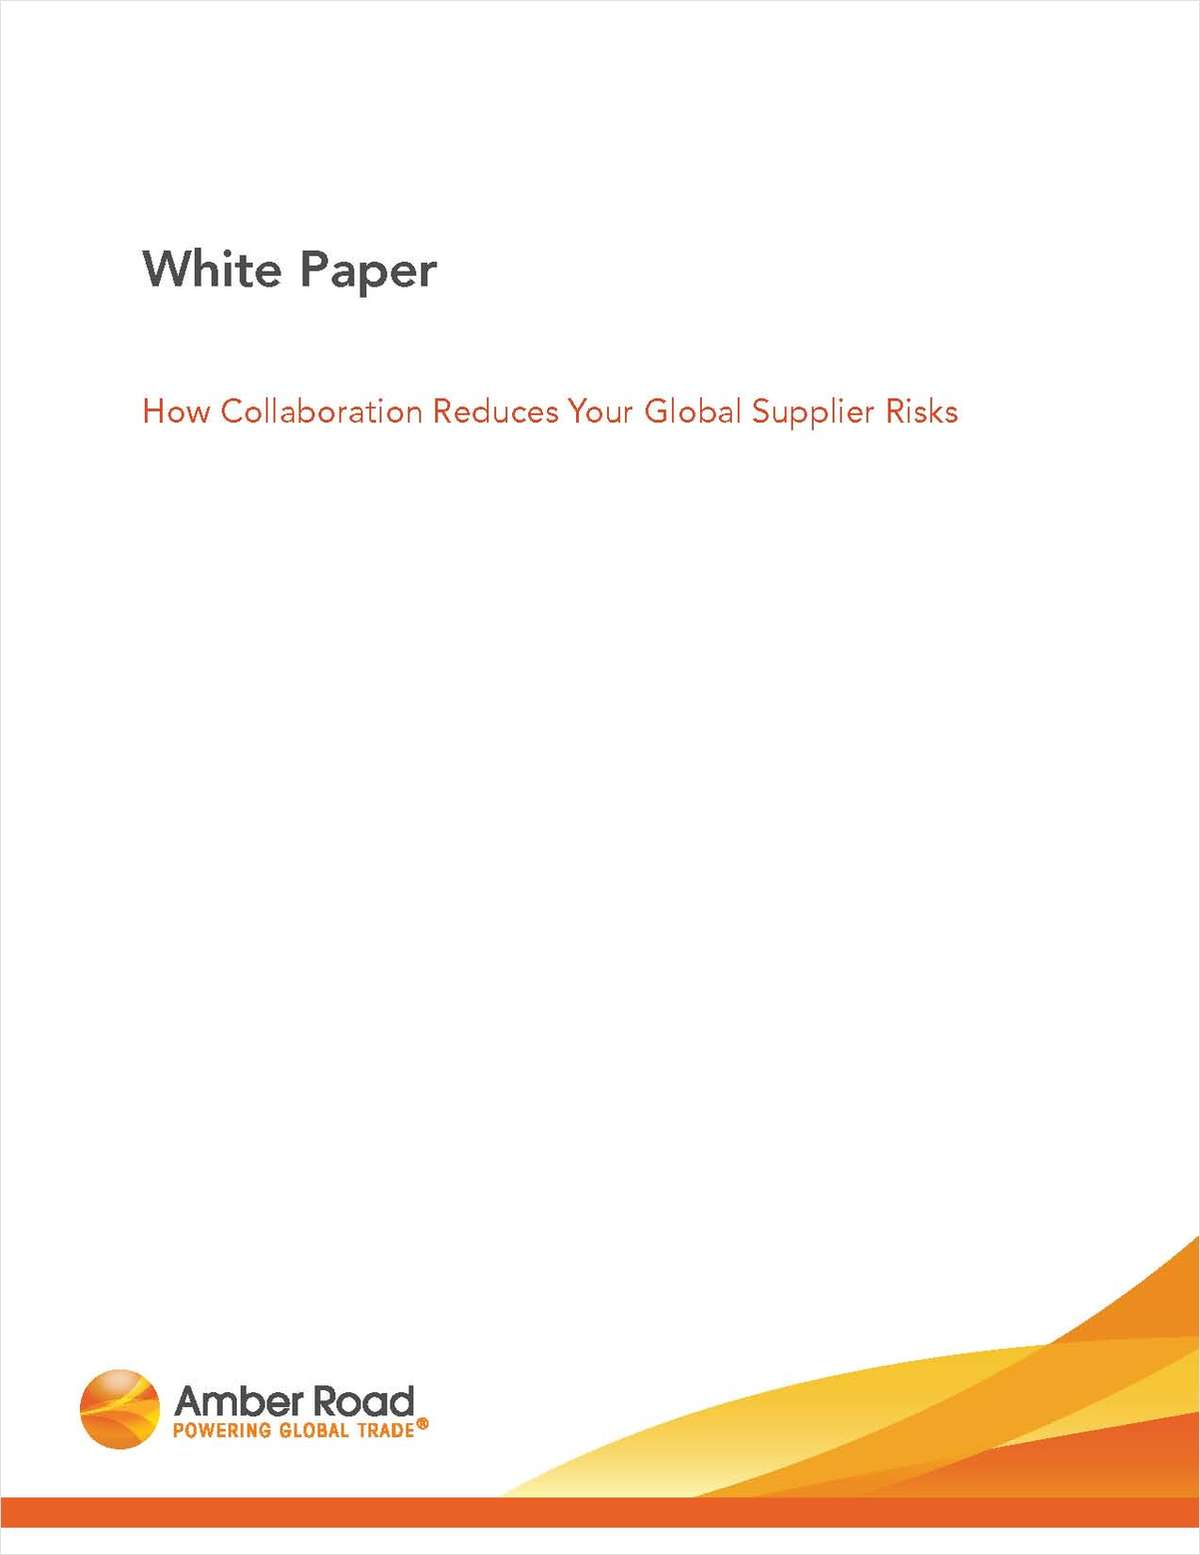 How Collaboration Reduces Your Global Supplier Risks